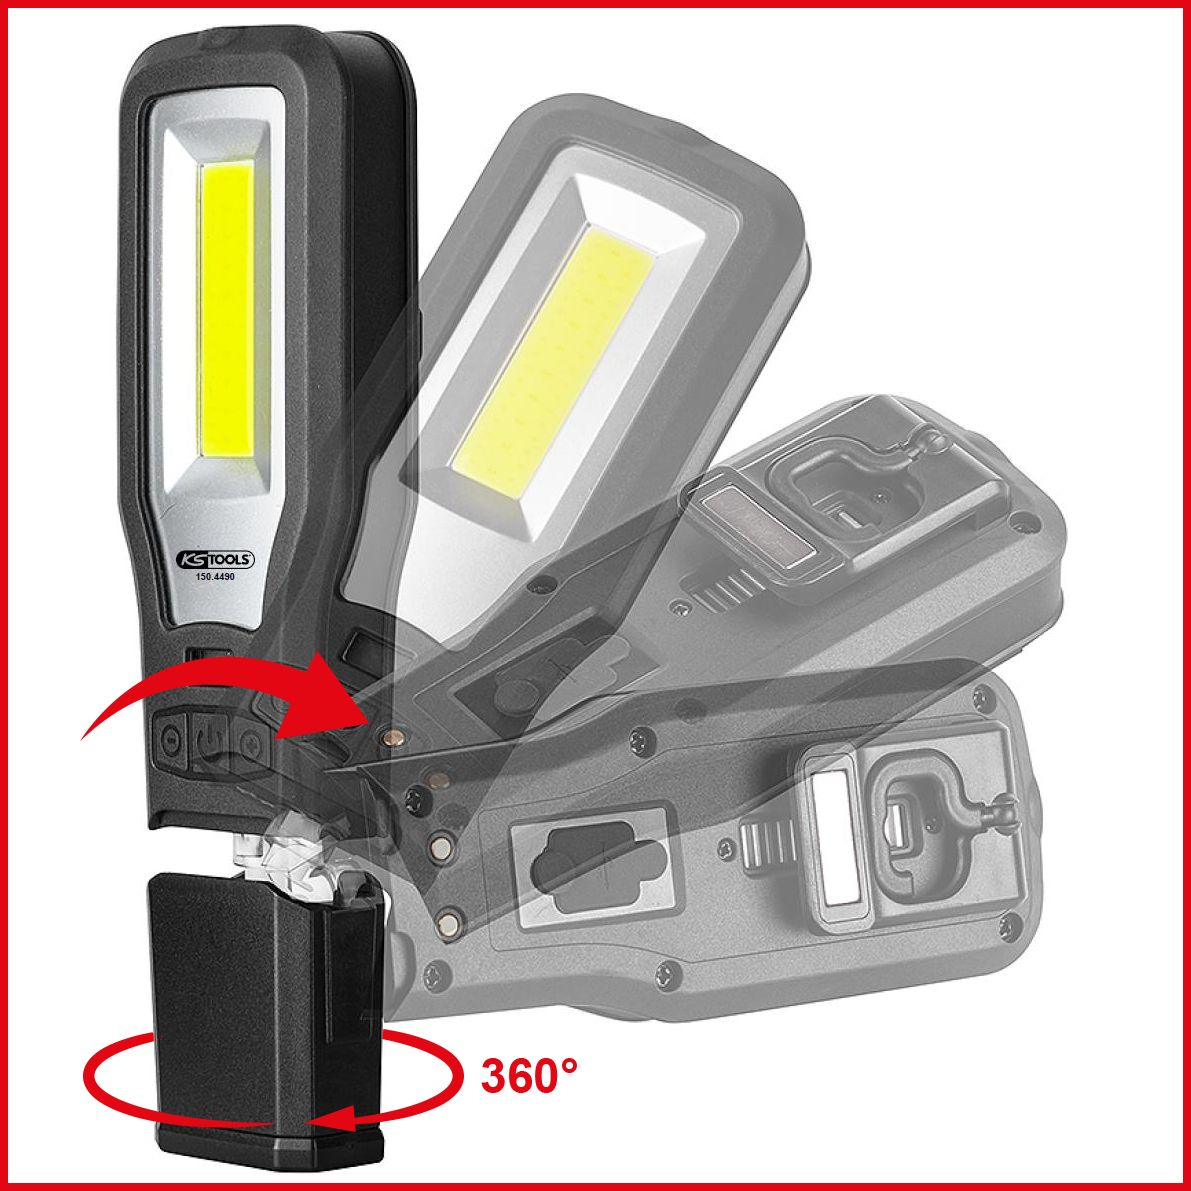 KS Tools knickbare LED Handlampe